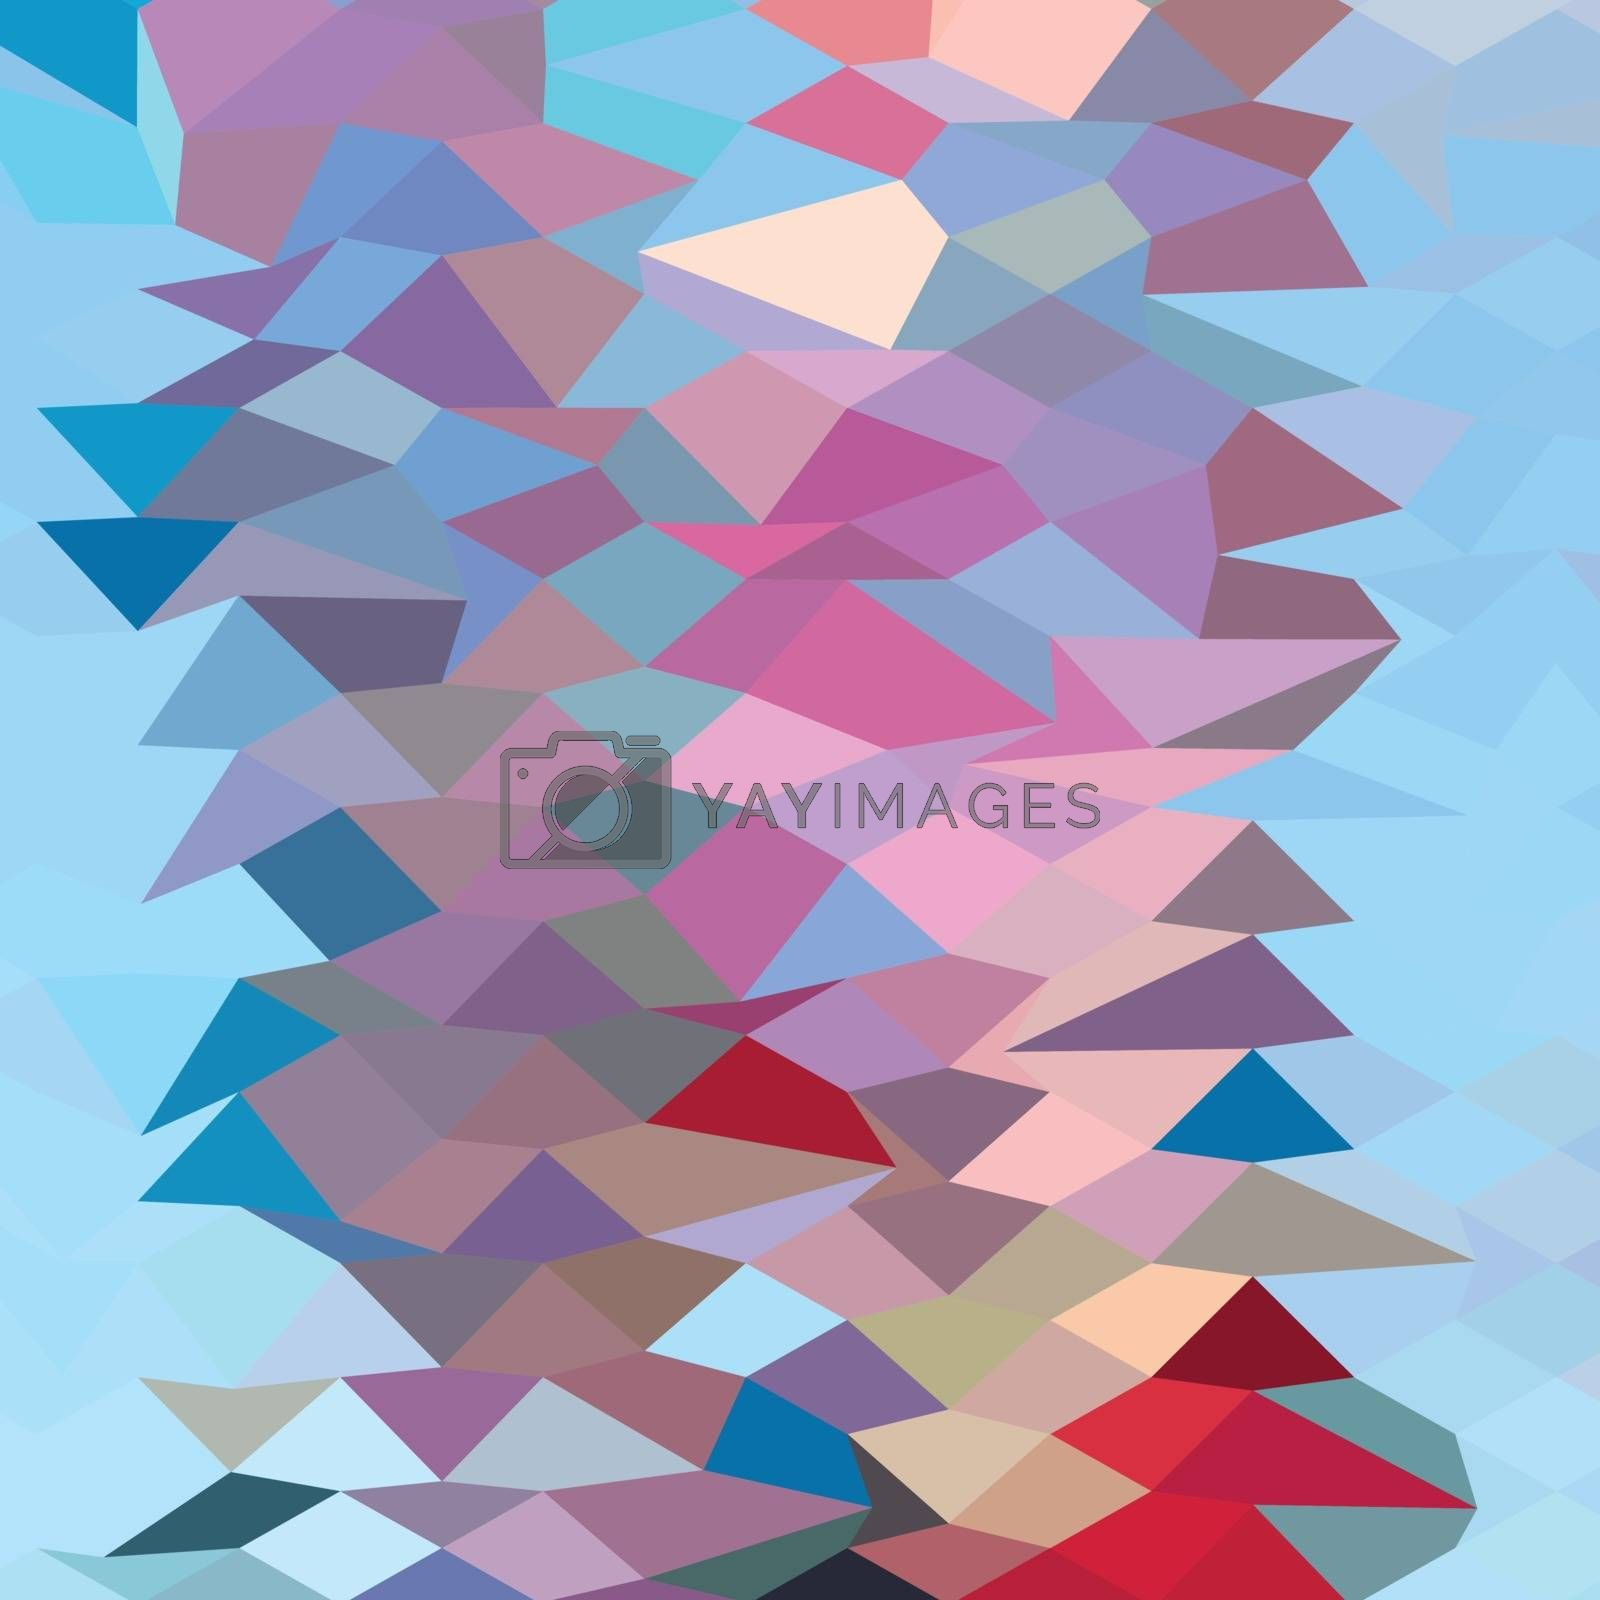 Low polygon style illustration of a aqua ruby red abstract background.